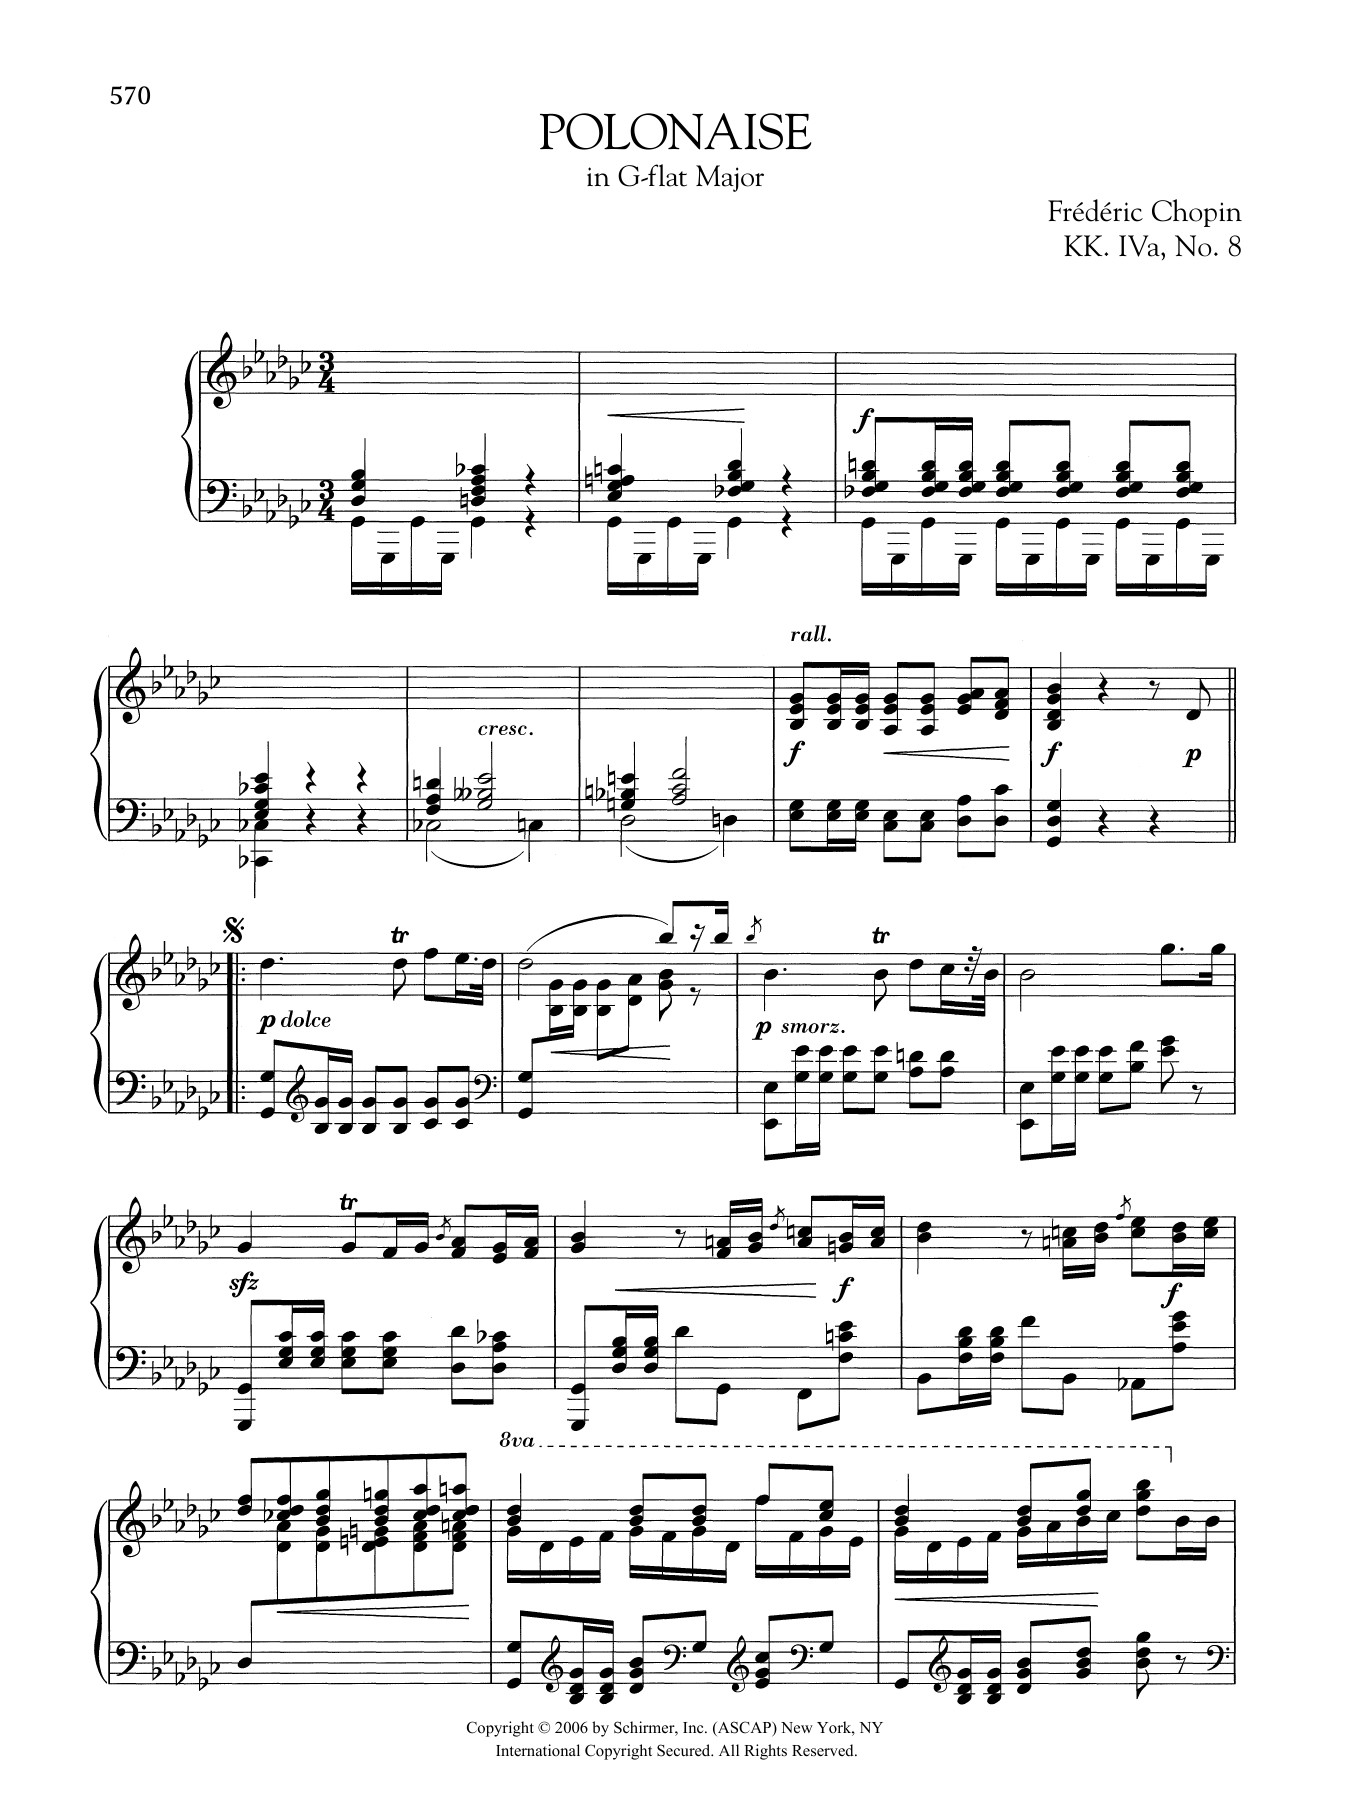 Polonaise in G-flat Major, KK. IVa, No. 8